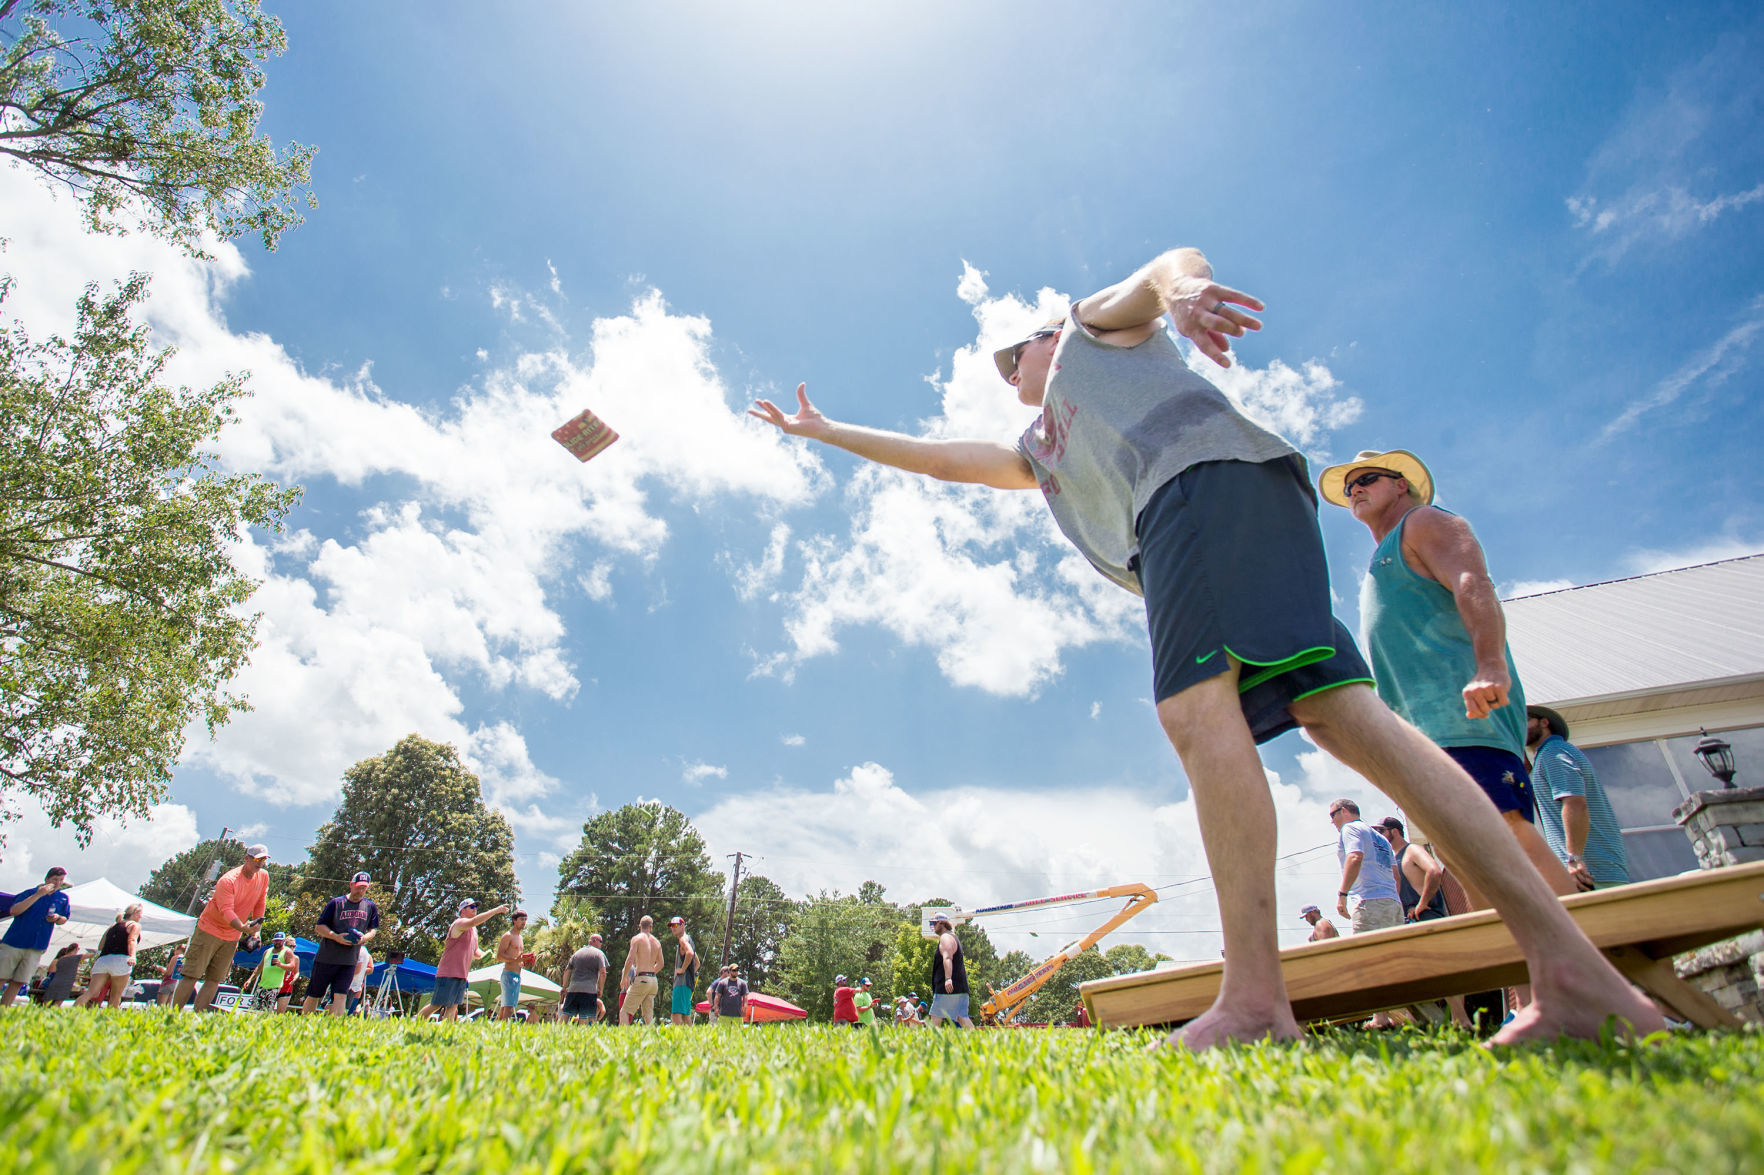 PHOTOS: Hogeland's 7th annual cornhole tournament draws 27 teams